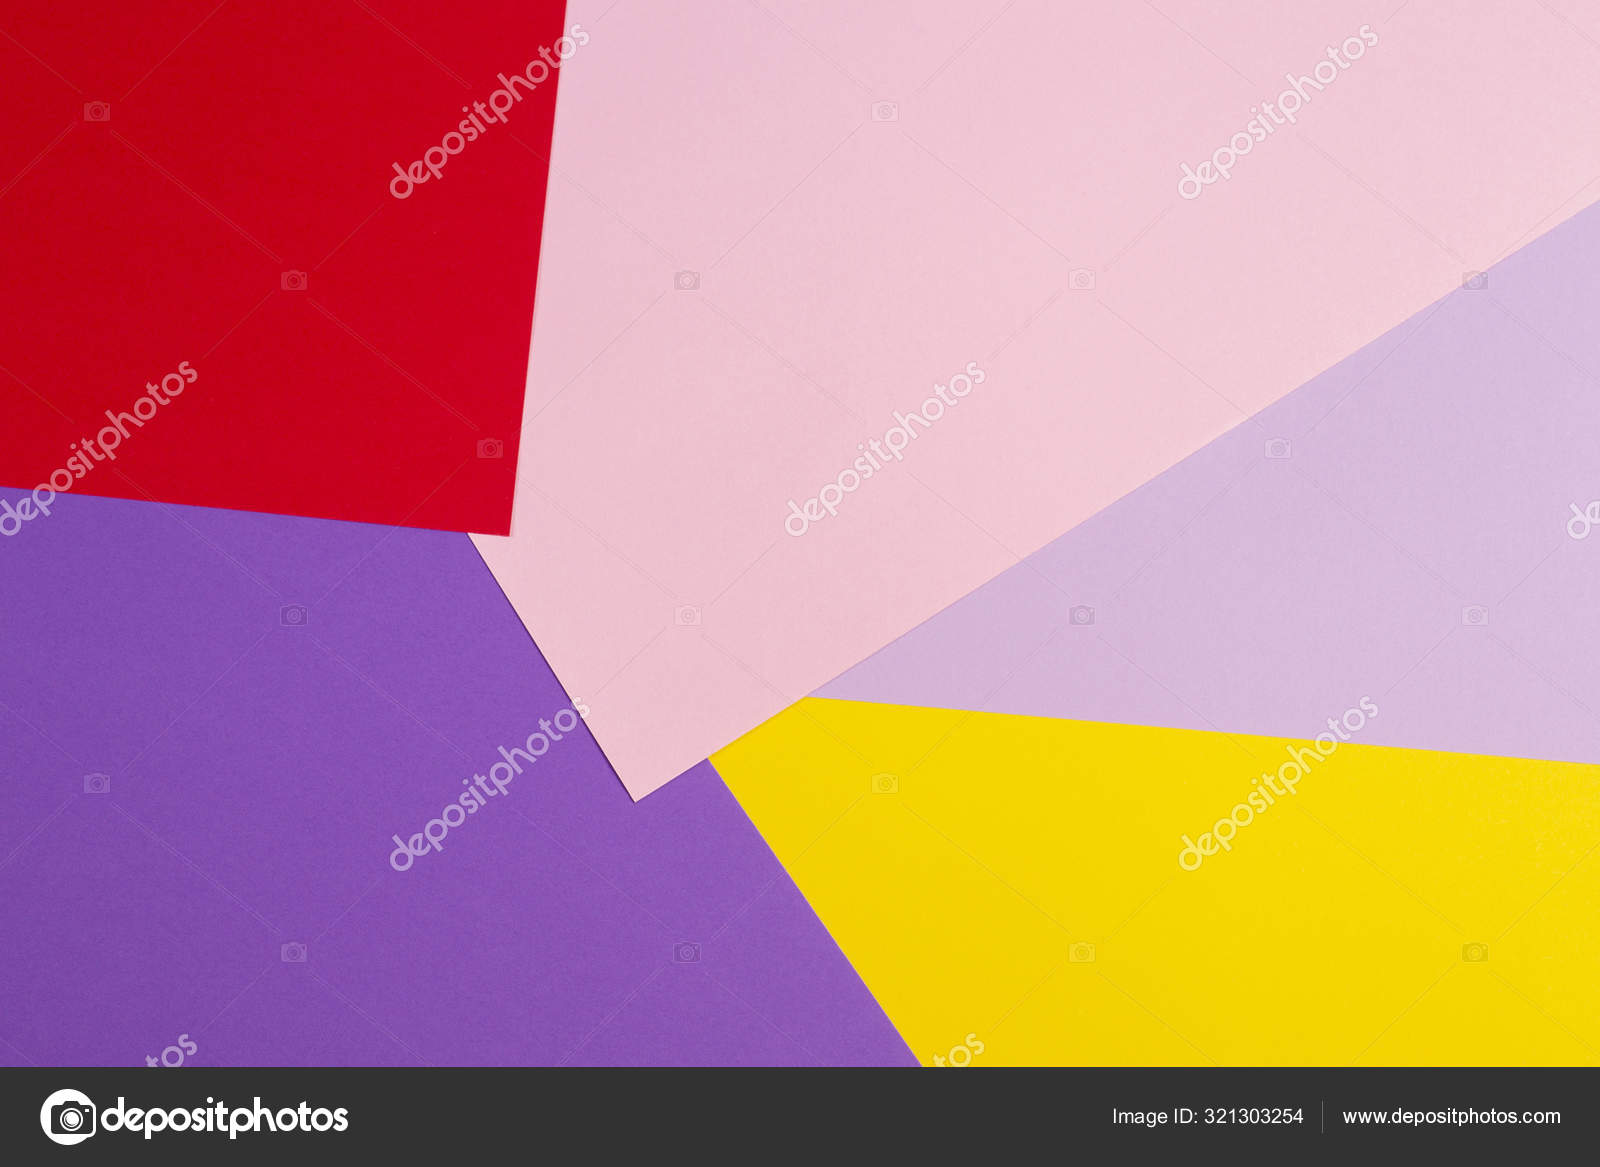 https fr depositphotos com 321303254 stock photo color papers geometry flat composition html